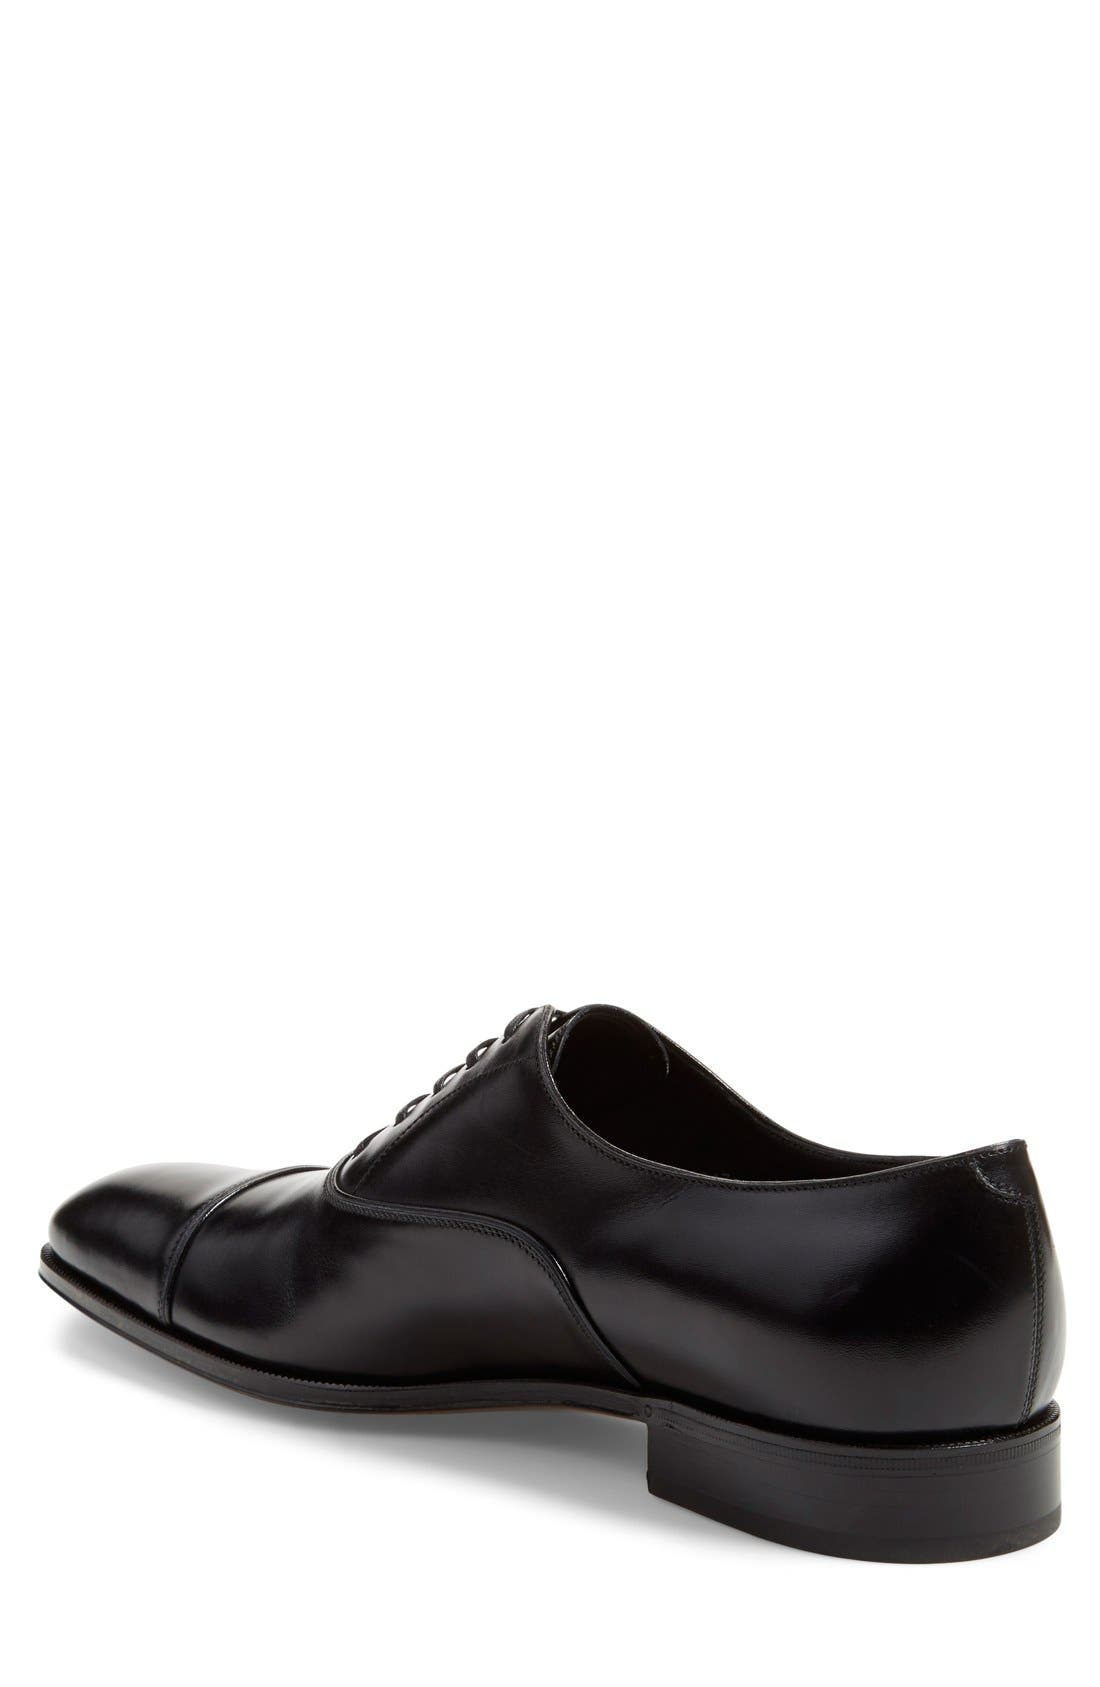 Luce Cap Toe Oxford,                             Alternate thumbnail 2, color,                             Nero  Leather